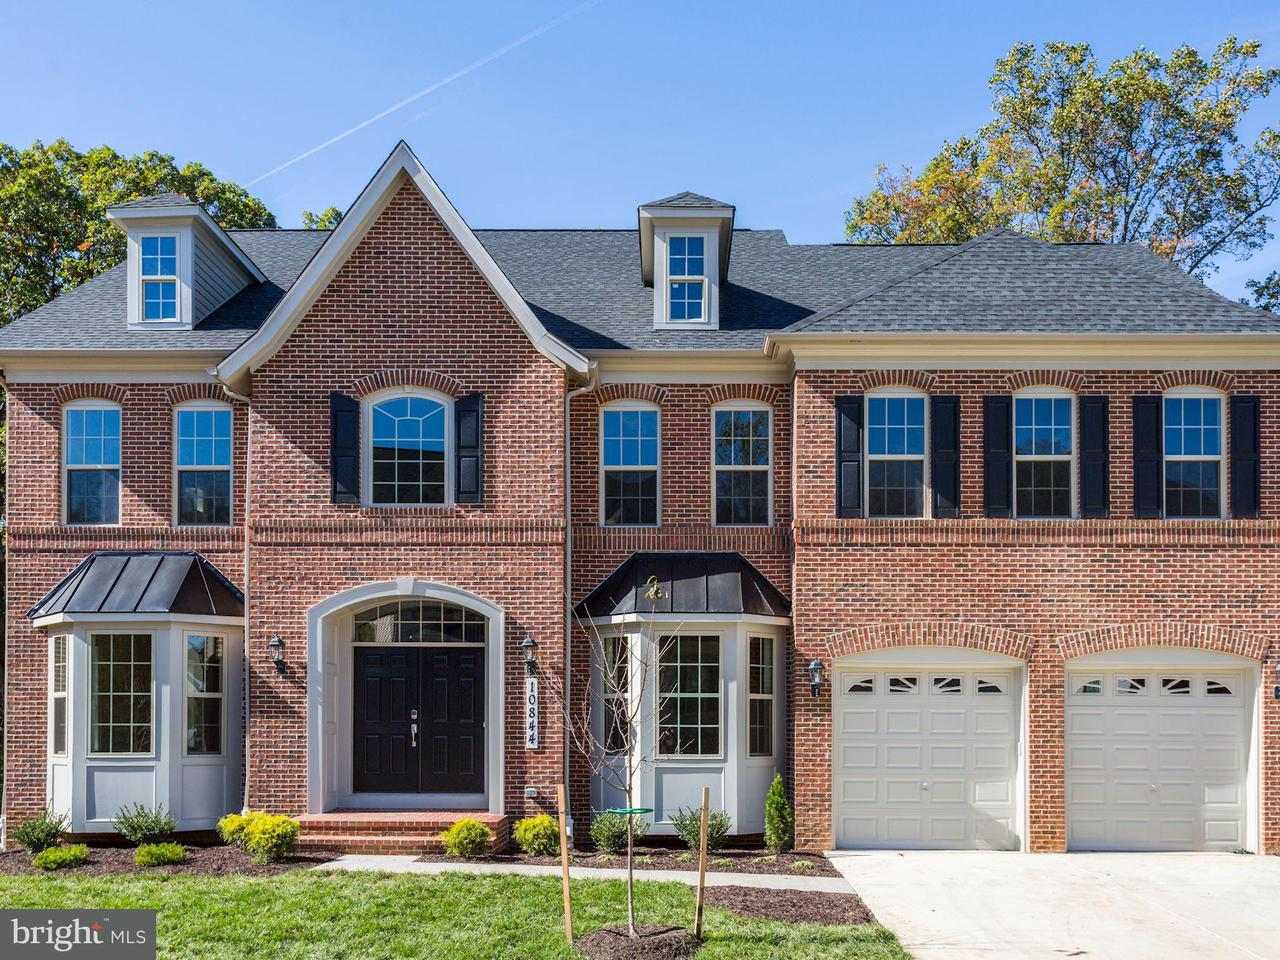 Single Family Home for Sale at Lot 09 Rockland Dr #Ready Now Lot 09 Rockland Dr #Ready Now Laurel, Maryland 20723 United States